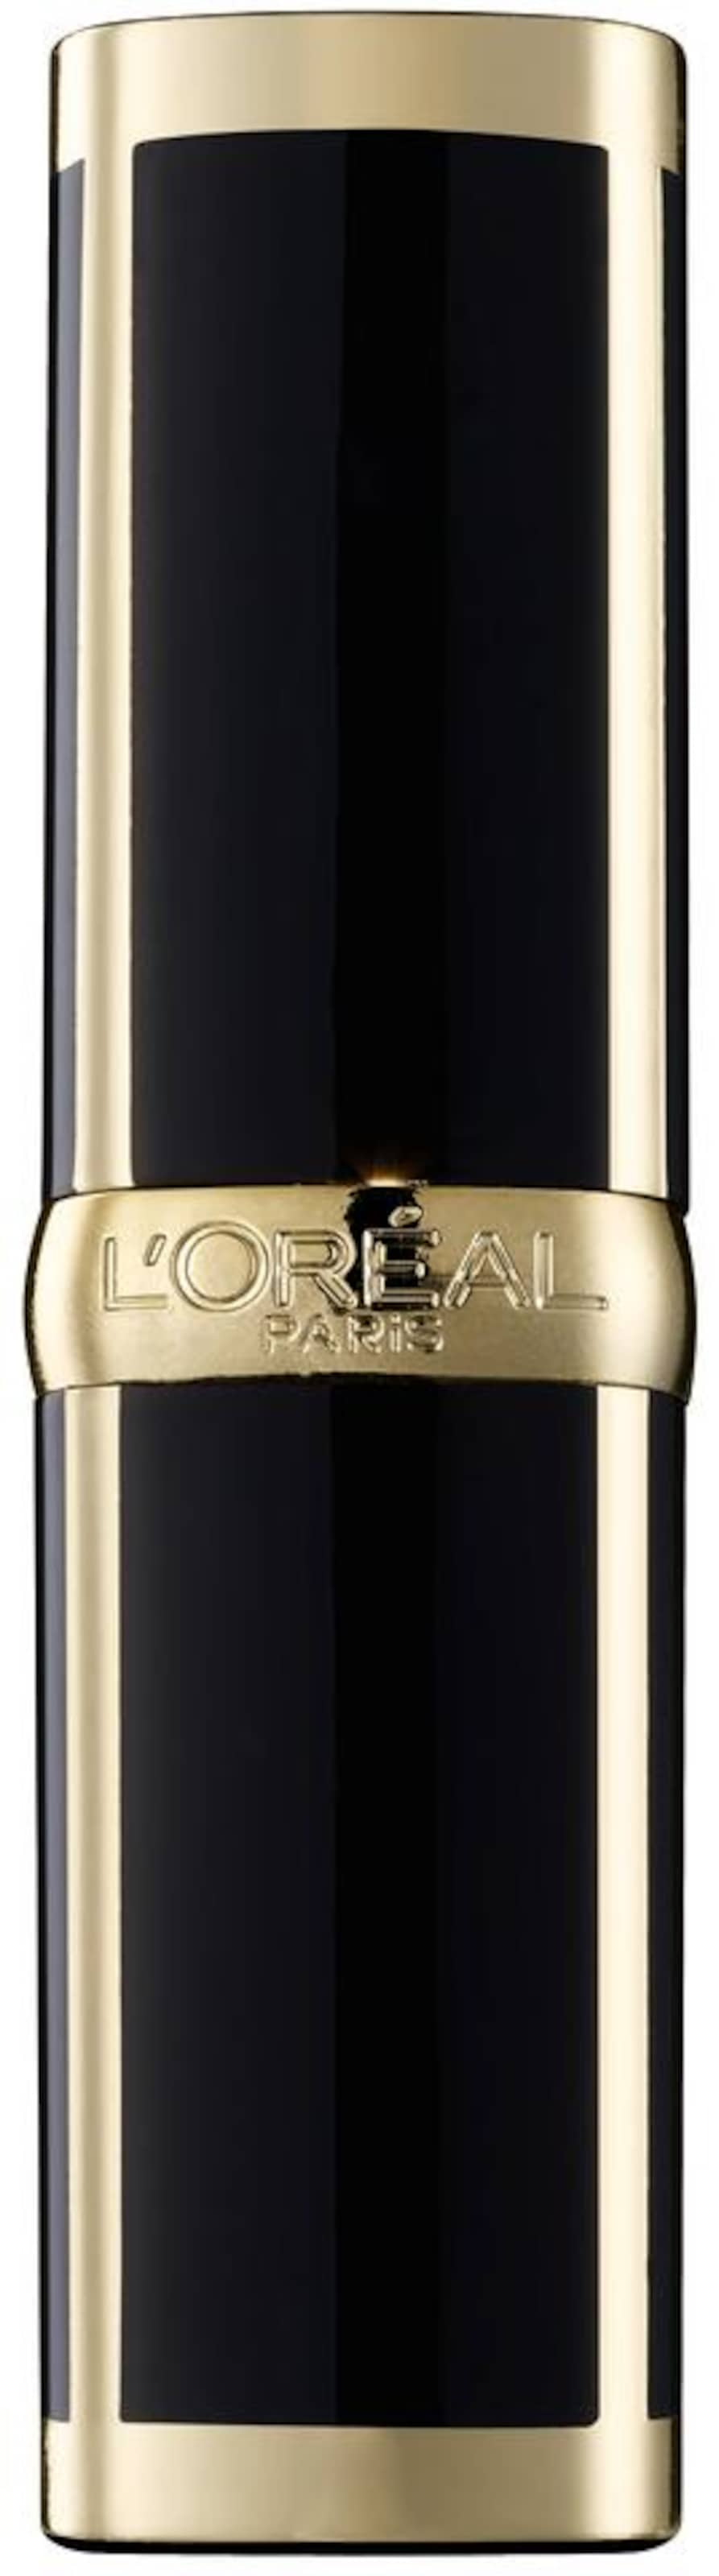 L'Oréal Paris 'Color Riche Balmain', Lippenstift